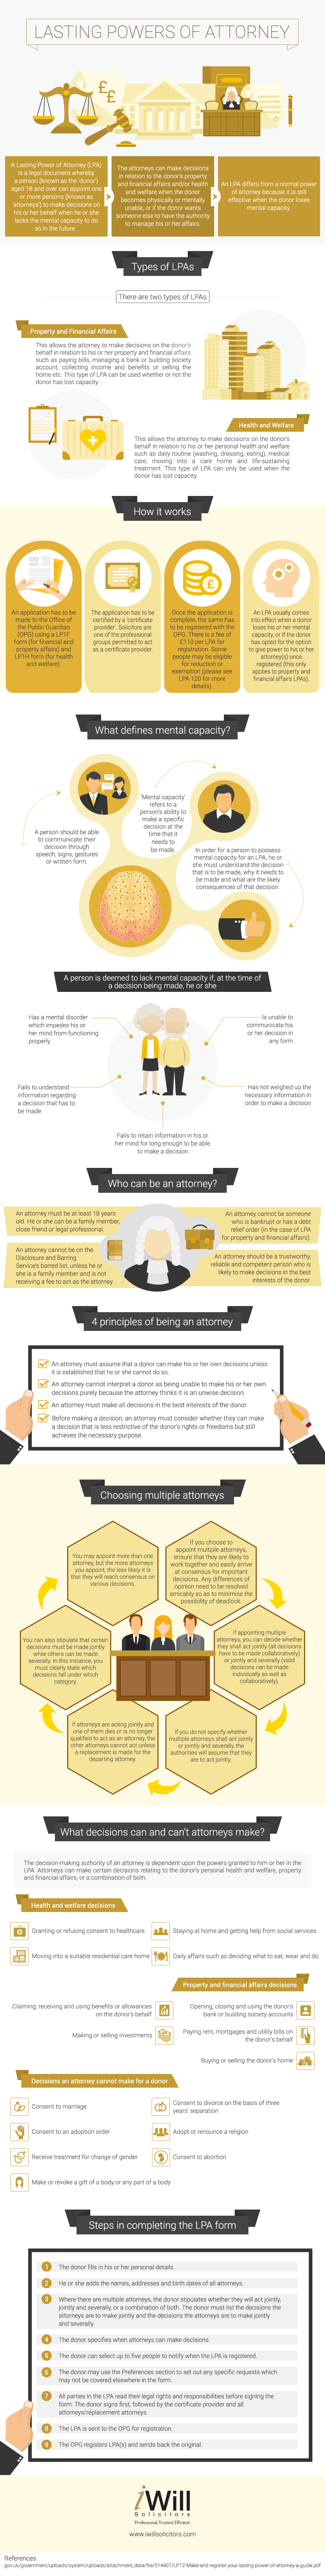 Infographic understanding lasting powers of attorney henry brooke falaconquin